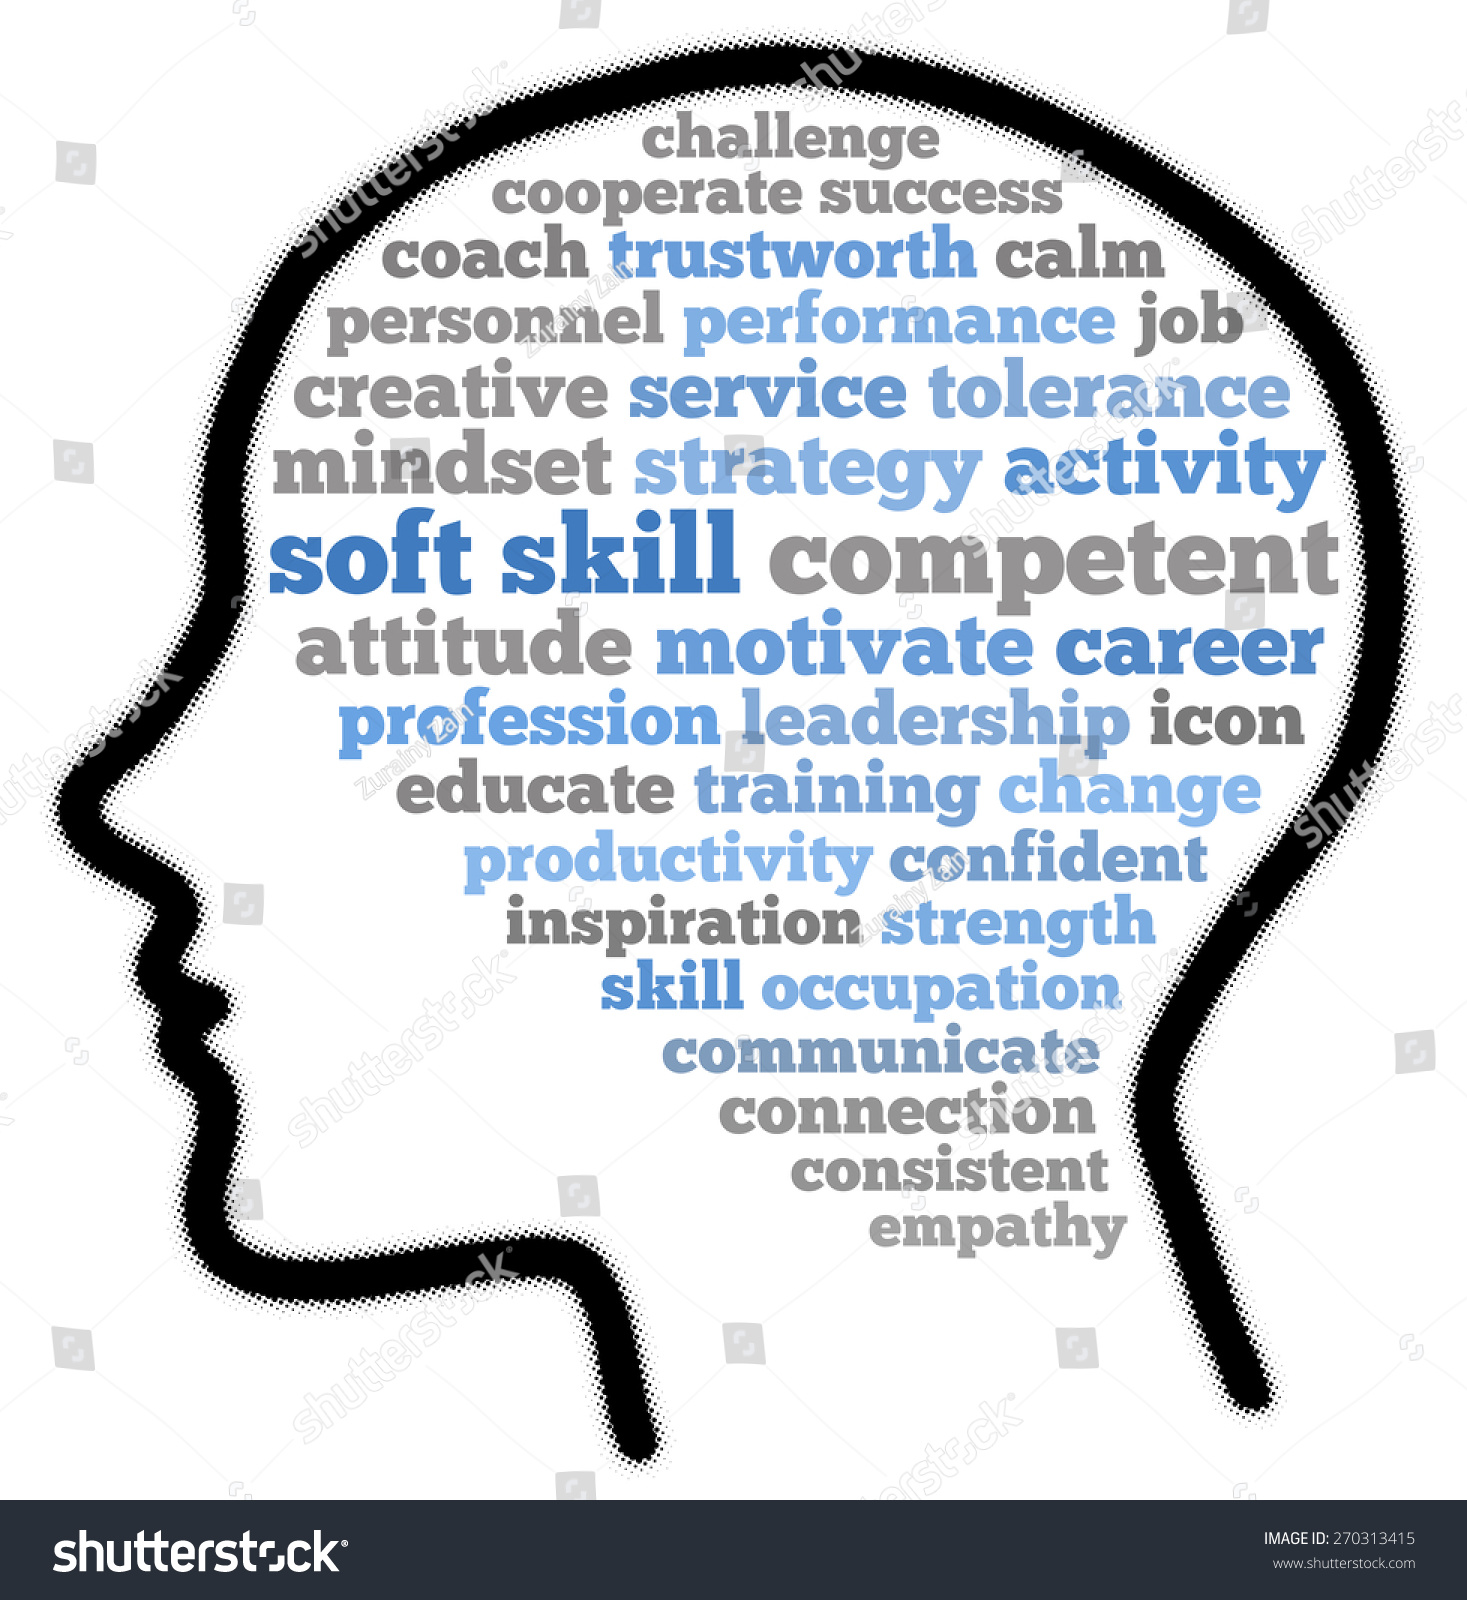 soft skill word cloud concept stock illustration  soft skill in word cloud concept